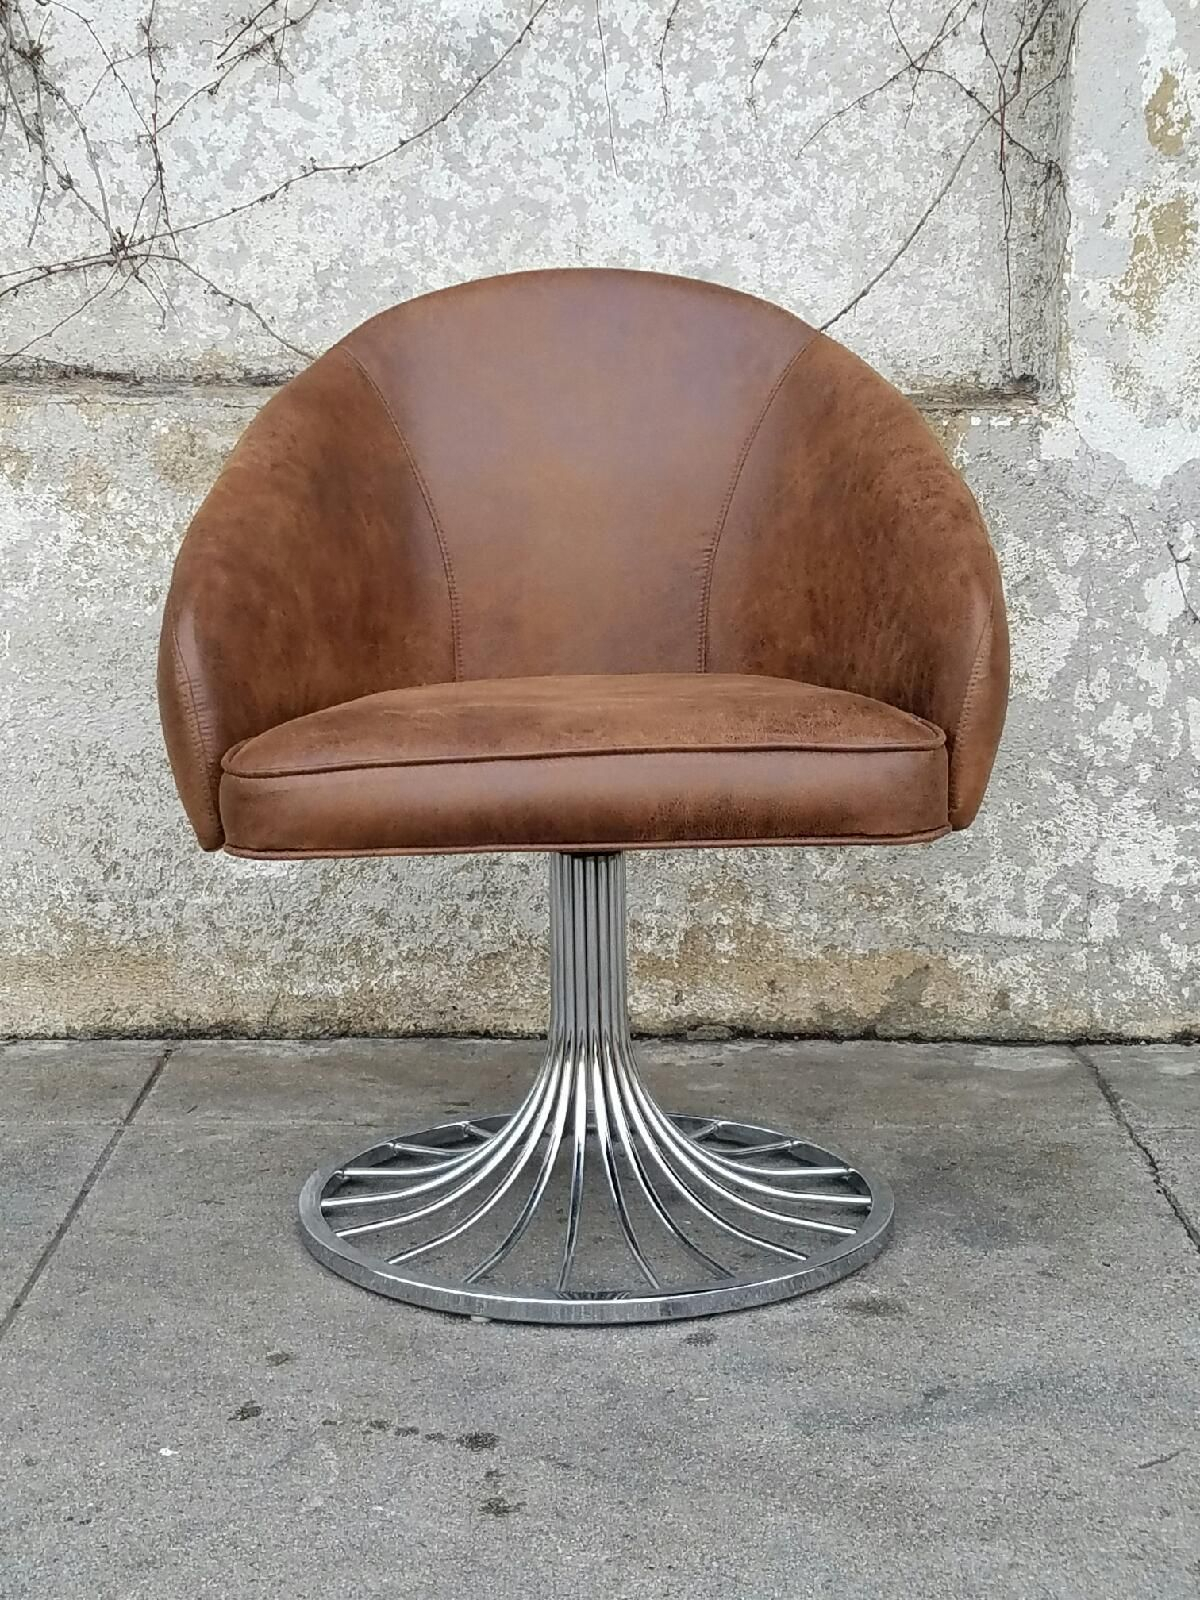 Faux Distressed Leather Vintage Swivel Chair In Tobacco Brown Regarding Swivel Tobacco Leather Chairs (View 7 of 25)